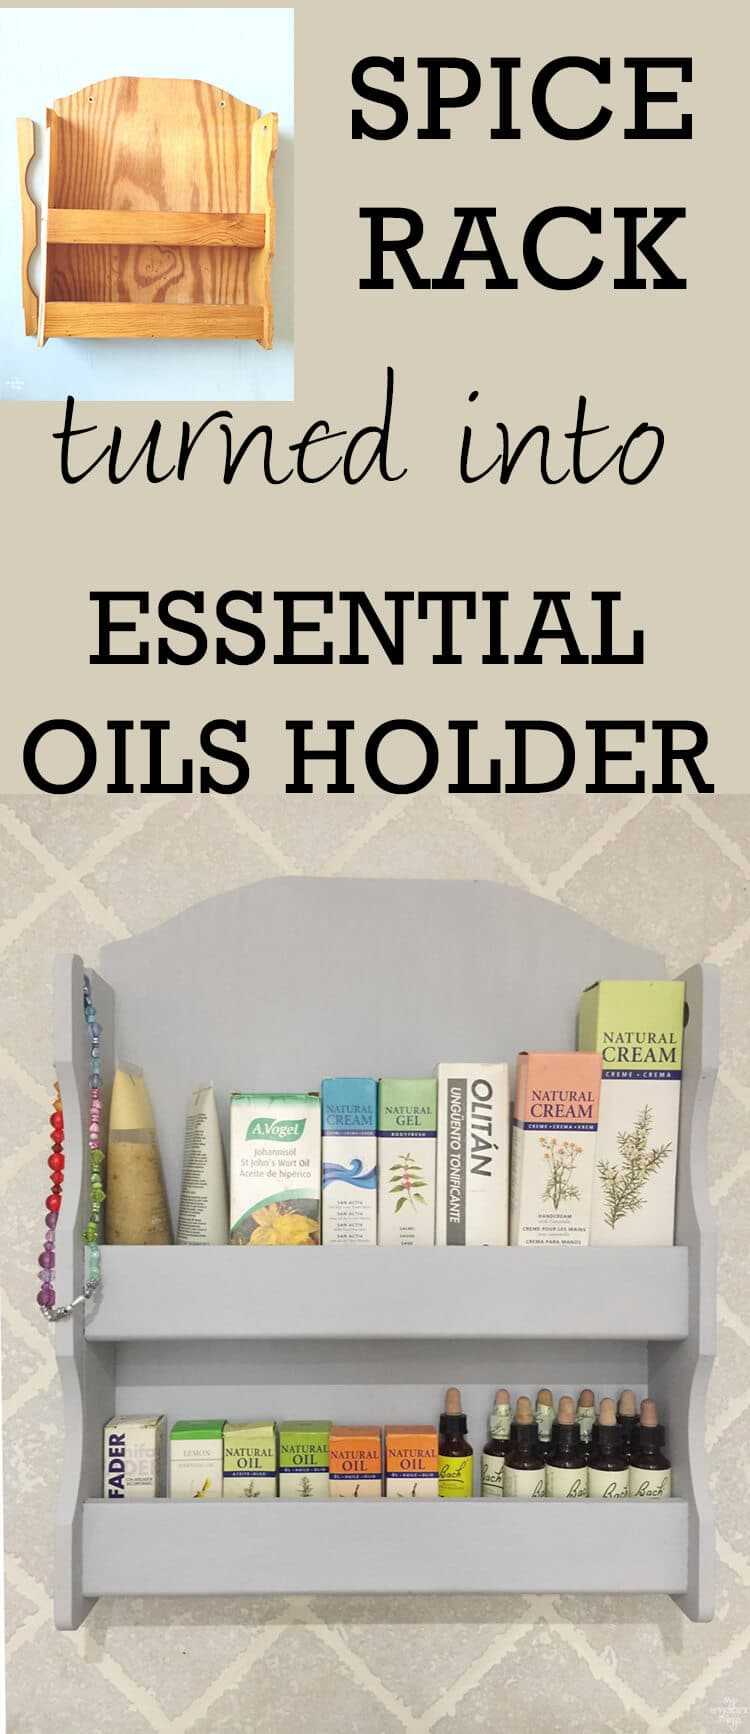 Spice rack turned into essential oils holder · Via www.sweethings.net